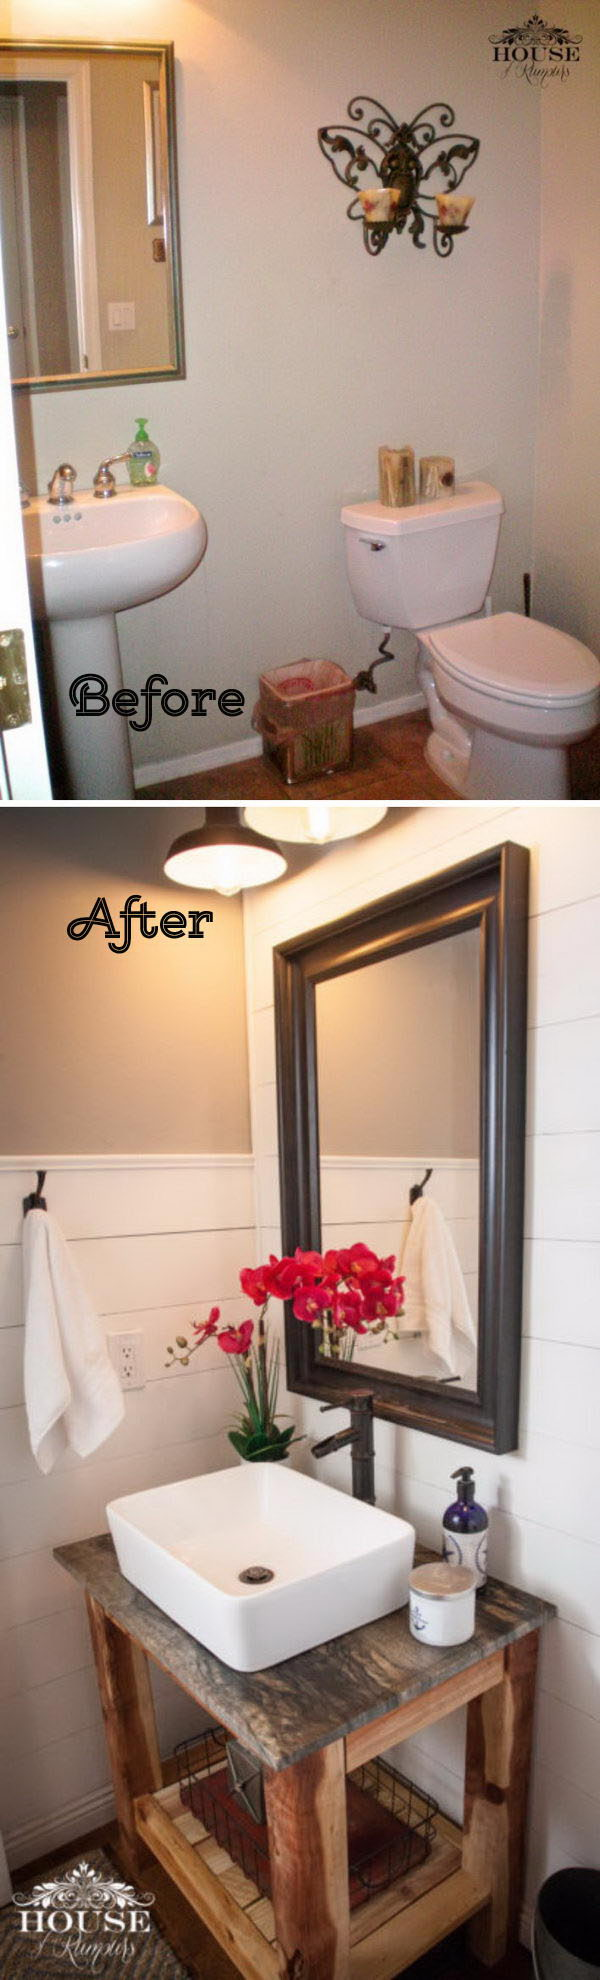 Powder Room Makeover With Shiplap Walls And A DIY Vanity.